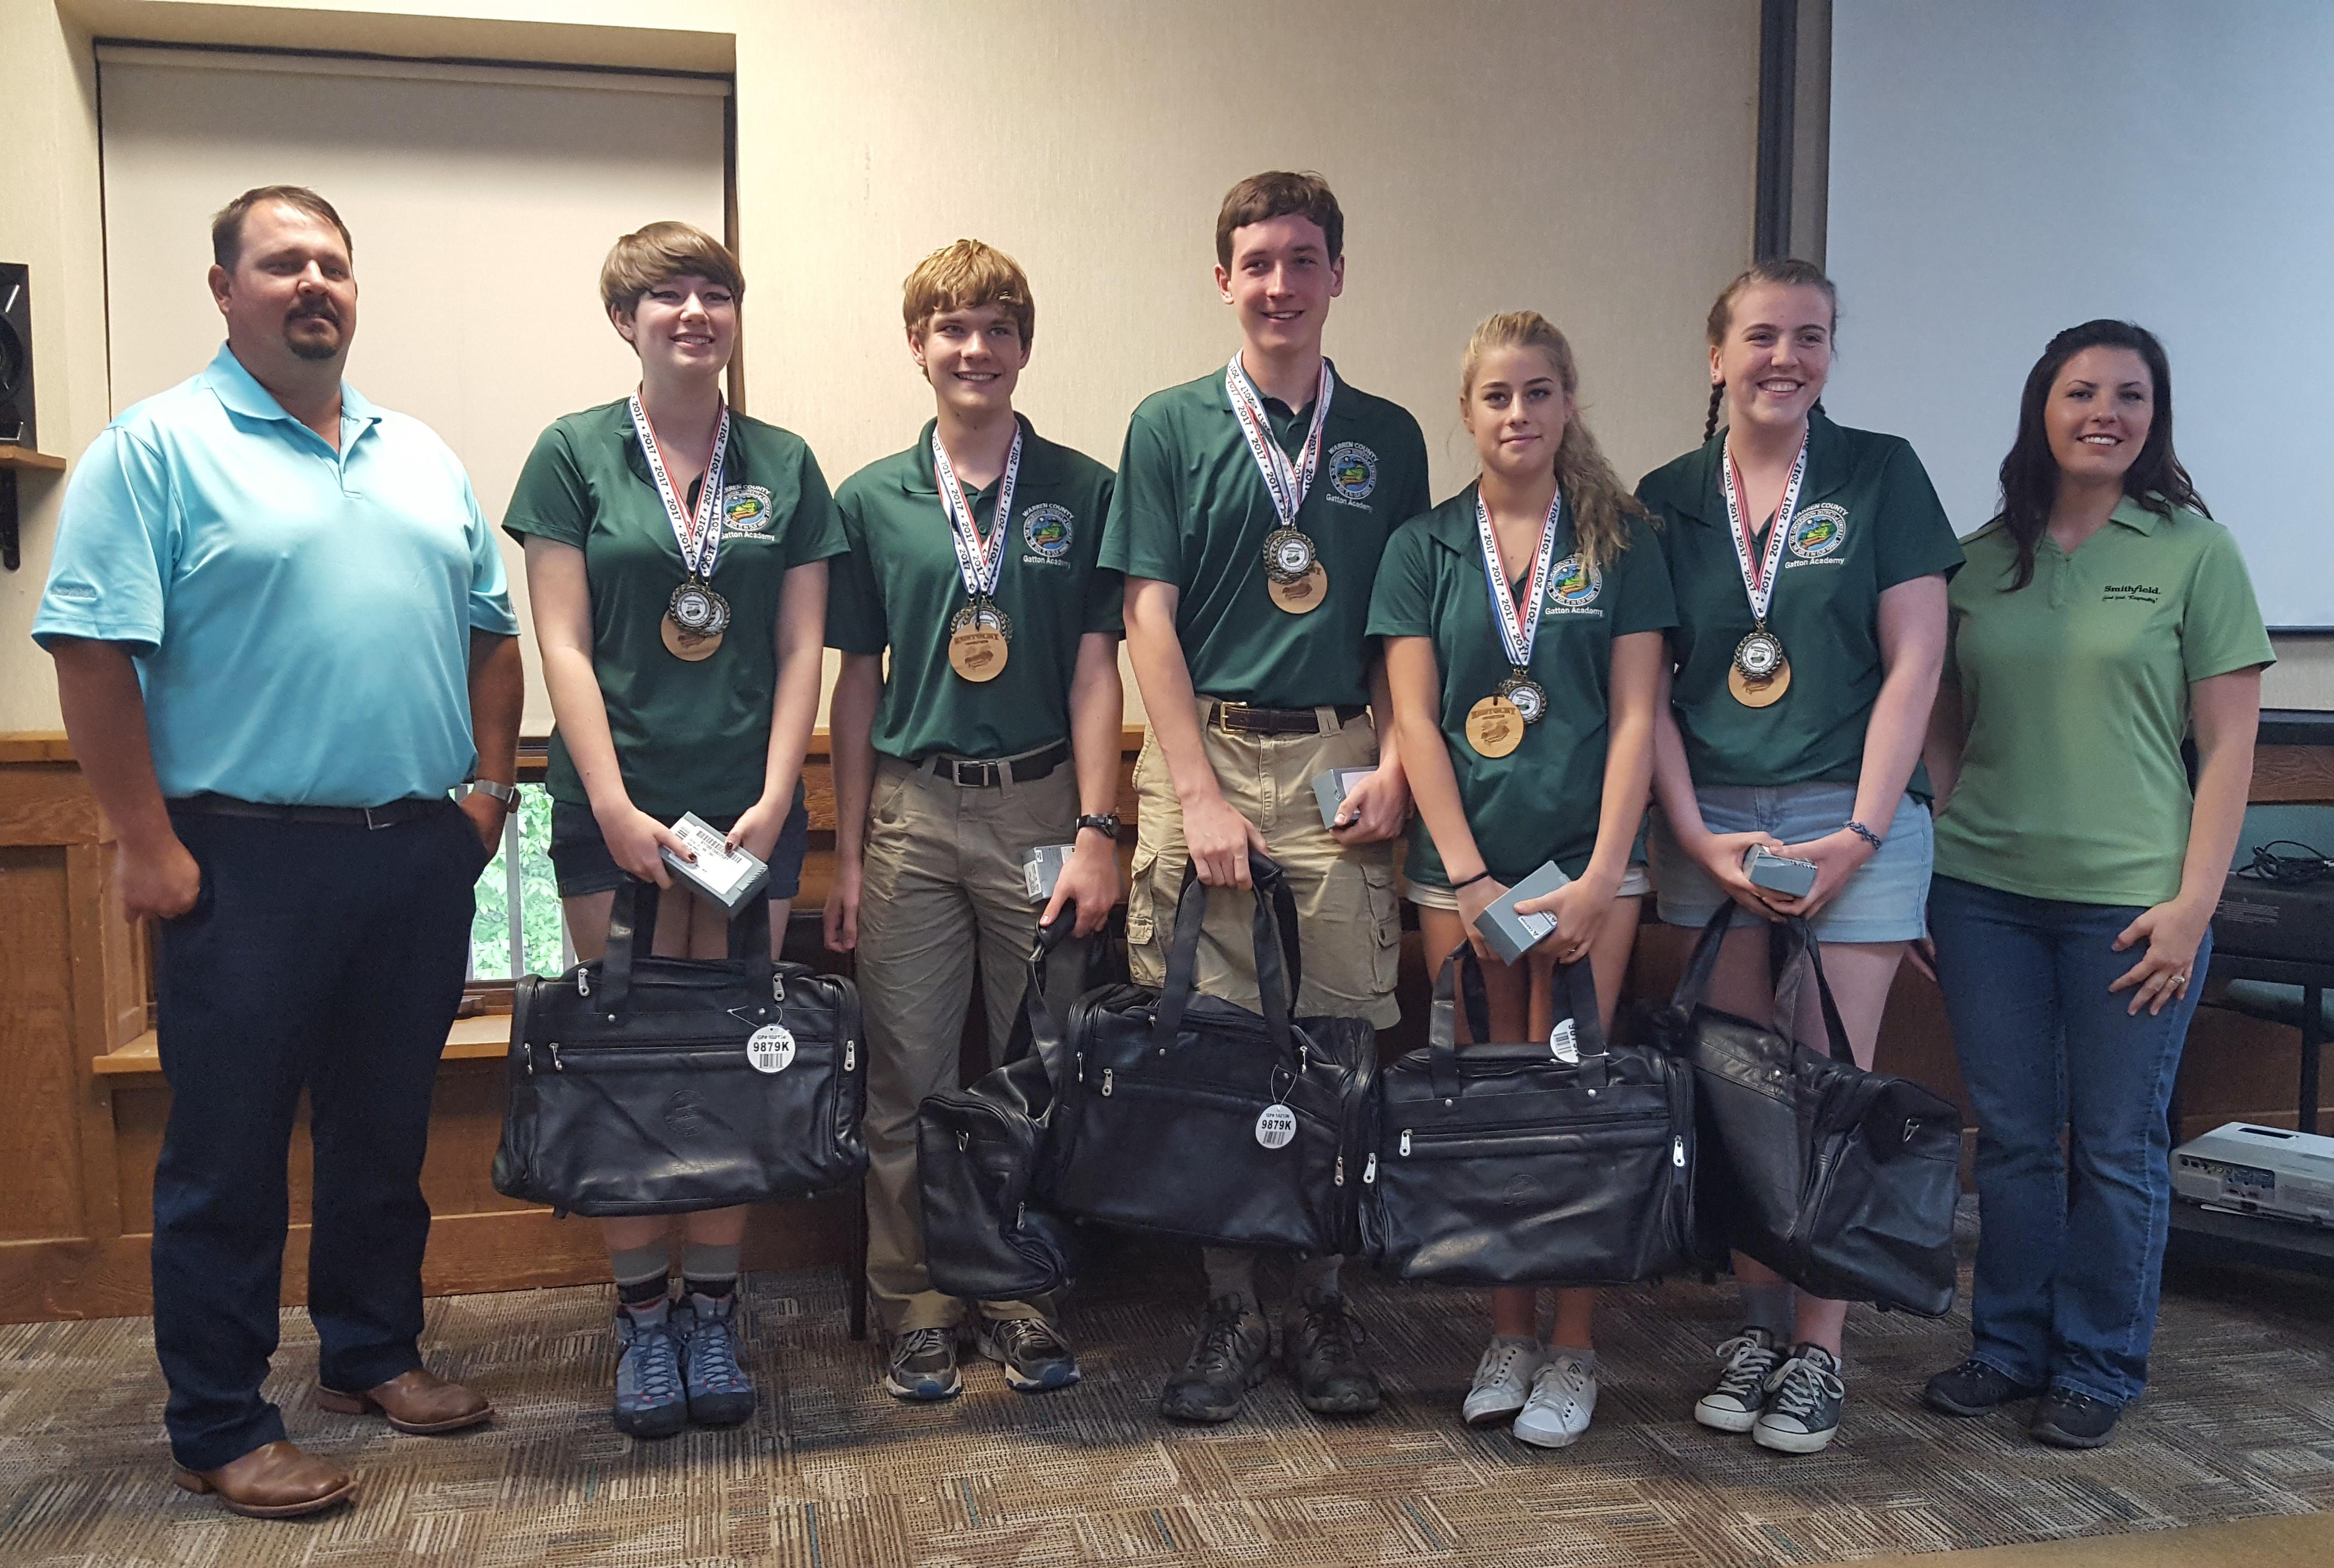 10 teams advance to represent the Commonwealth at the North American Envirothon competition